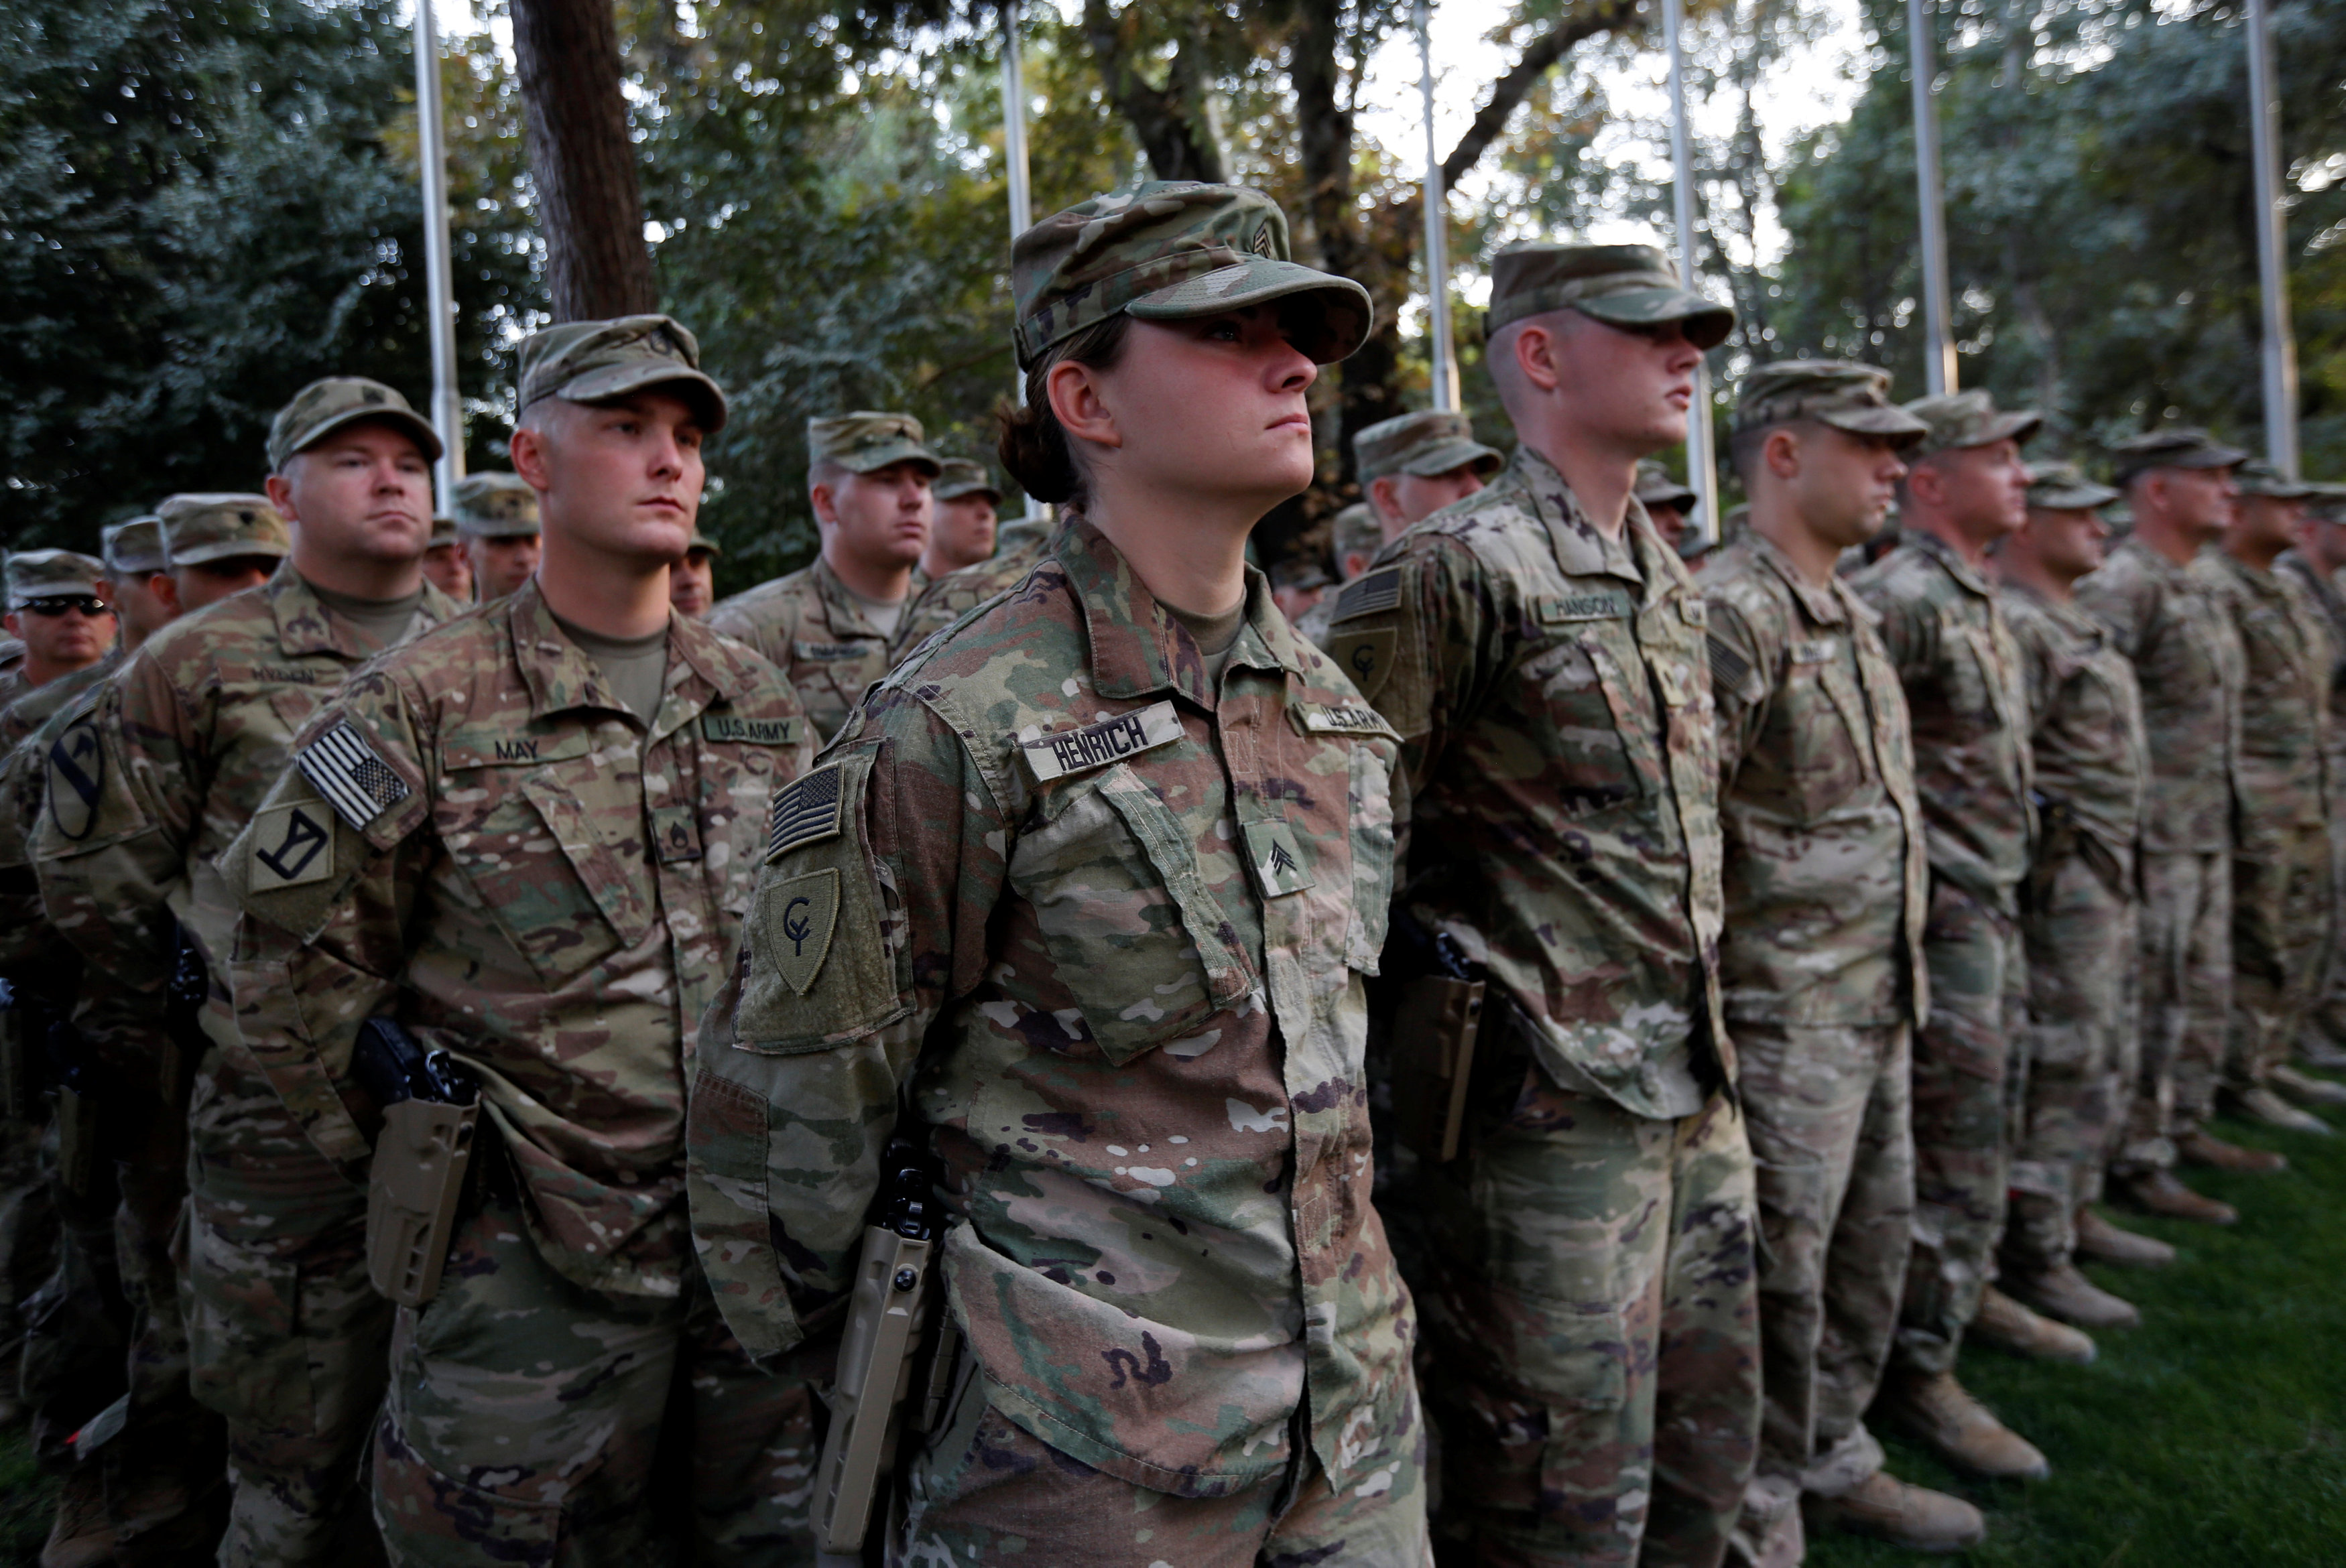 U.S. soldiers take part in a memorial ceremony to commemorate the 16th anniversary of the 9/11 attacks, in Kabul, Afghanistan on Sept. 11, 2017. (REUTERS/Mohammad Ismail)